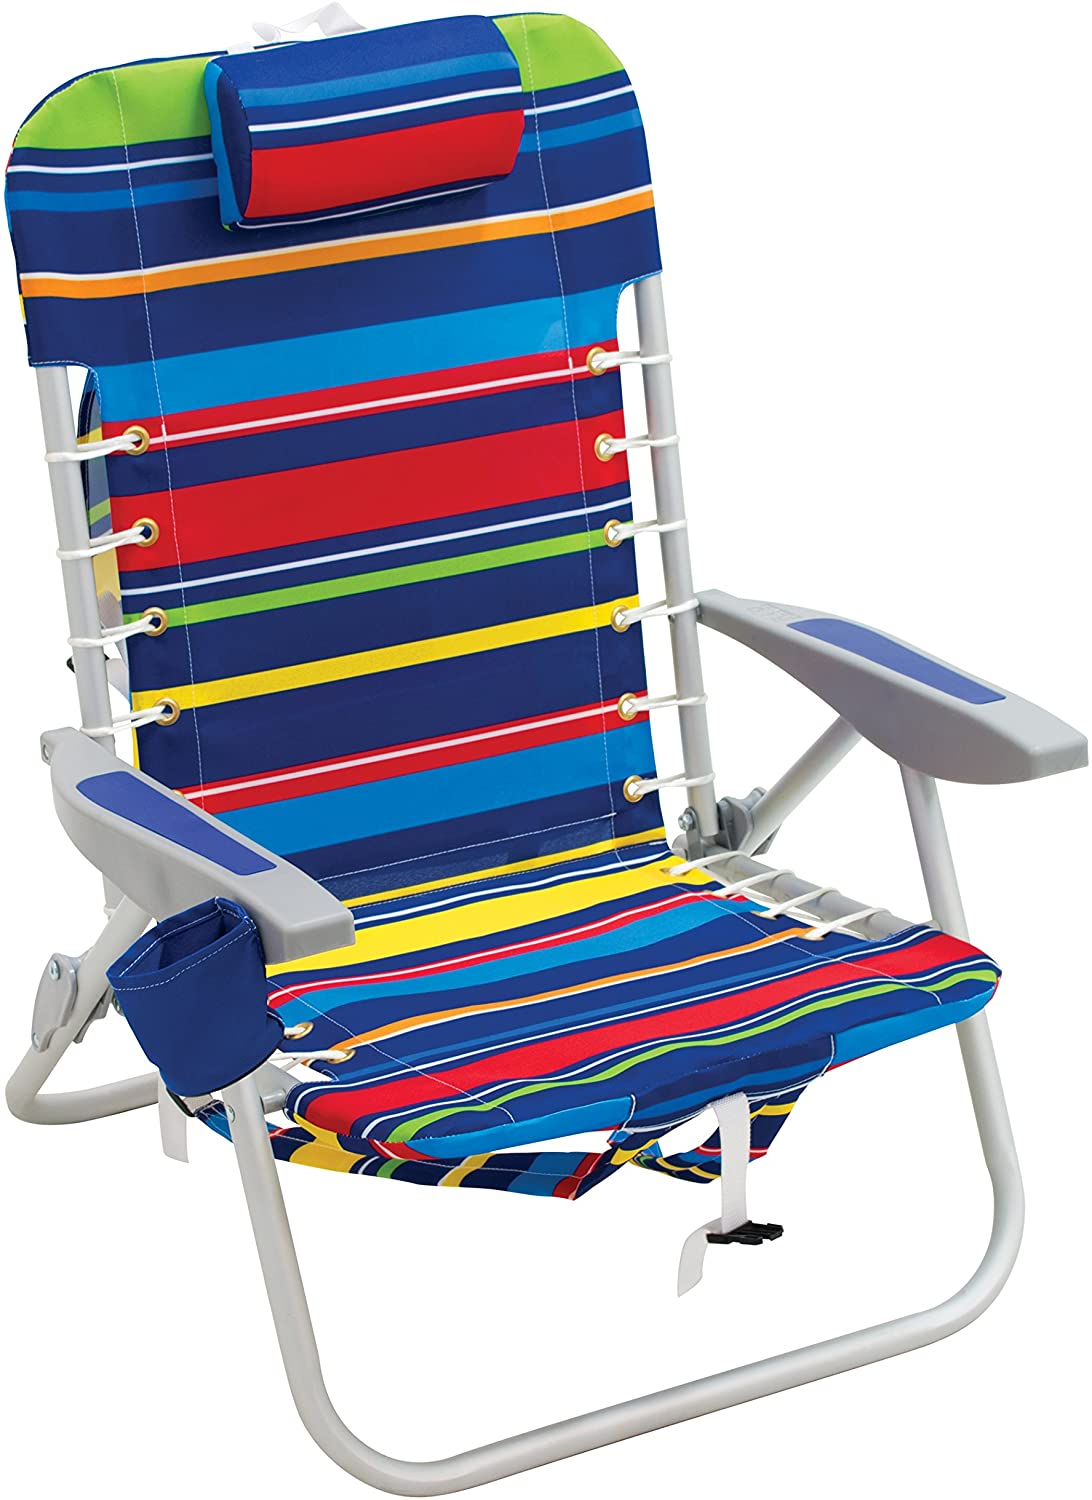 RIO Beach 4-Position Lace-Up Foldable Beach Chair